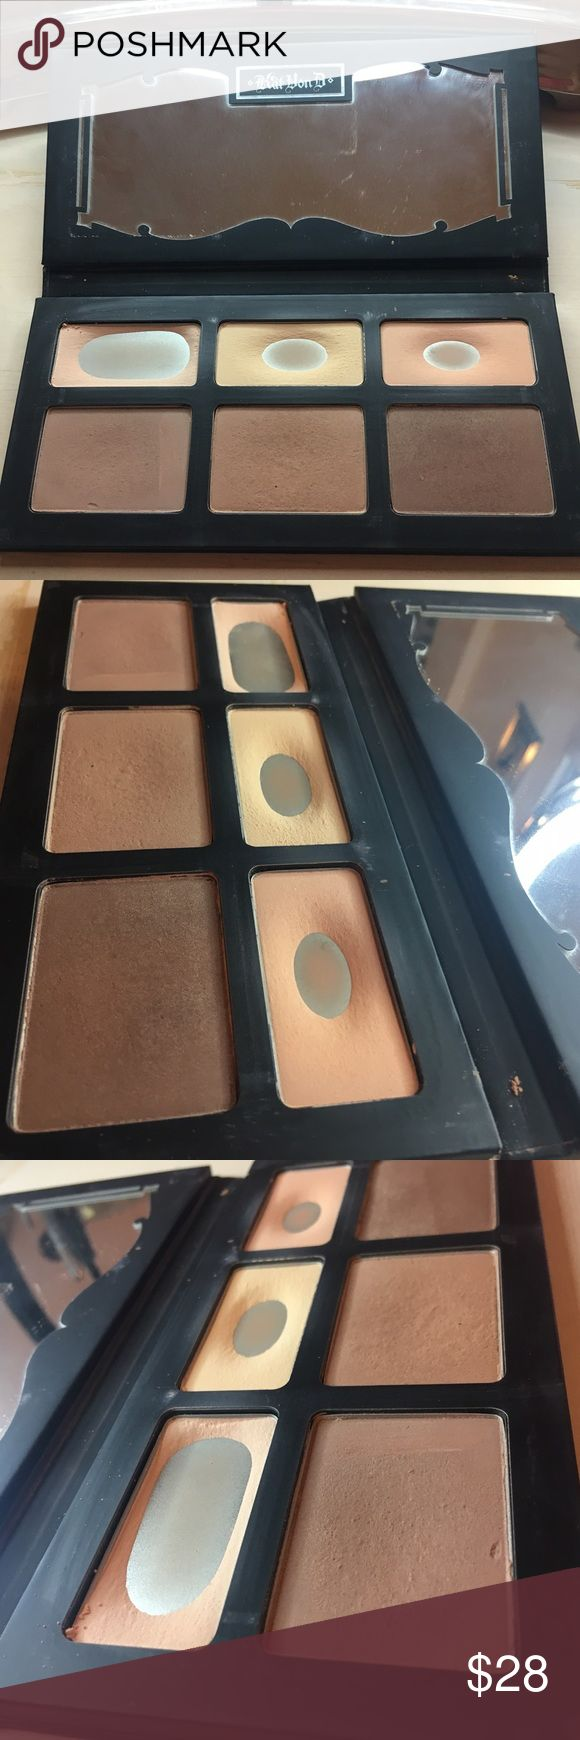 Kat Von D Shade and Light Palette Kat Von D Shade and Light Palette. Used mostly just the highlight shades. Contour shades were used maybe once or twice. Pans are full. In great but used condition. Contour shades sell for around $20 each at Sephora. Kat Von D Makeup Face Powder